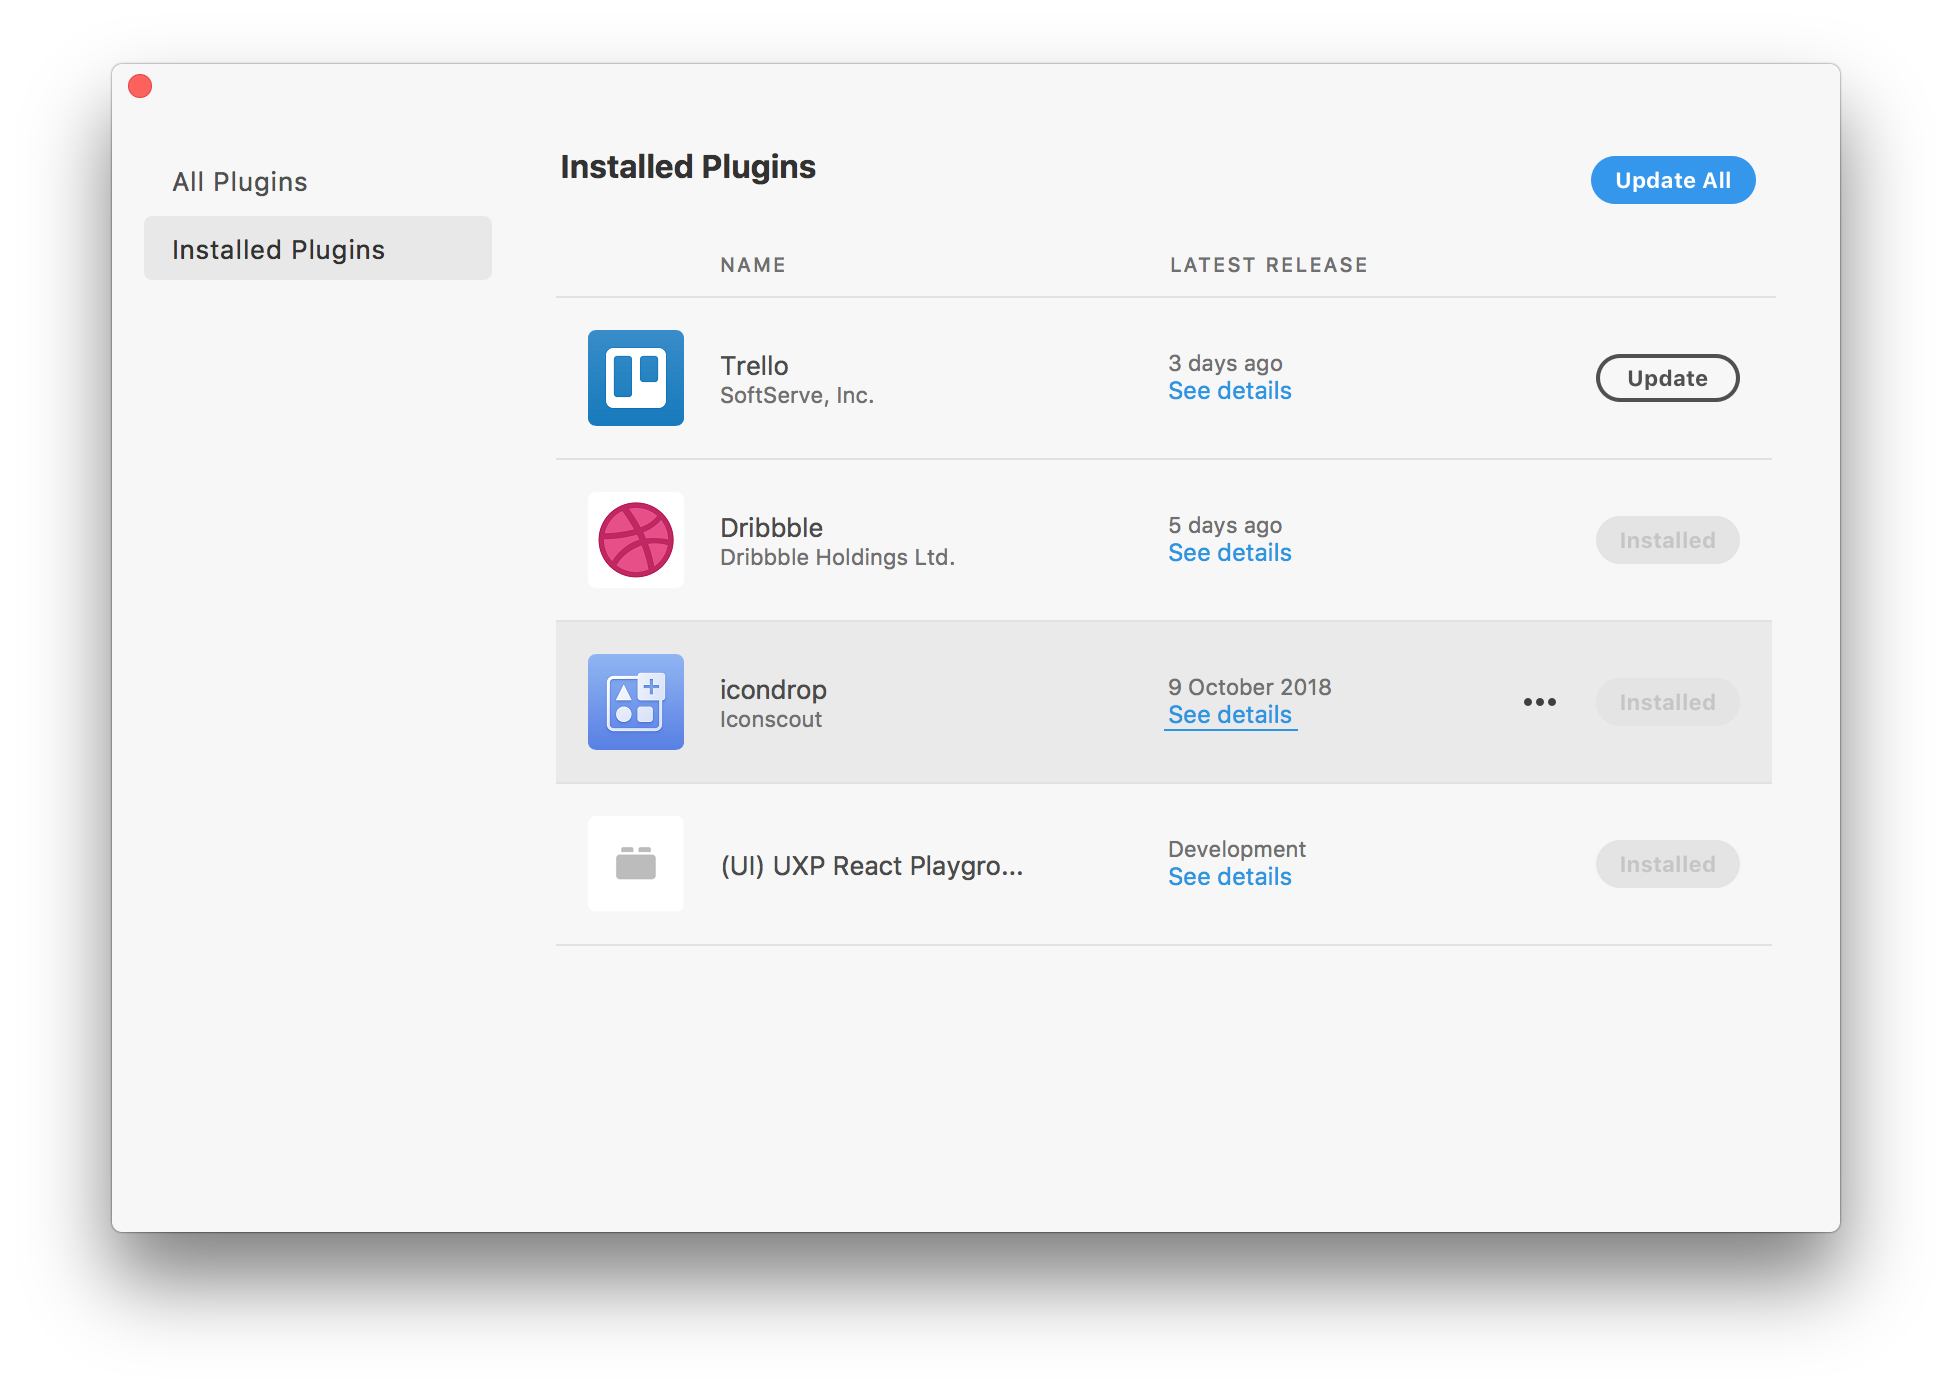 How to install Icondrop for Adobe XD - Iconscout